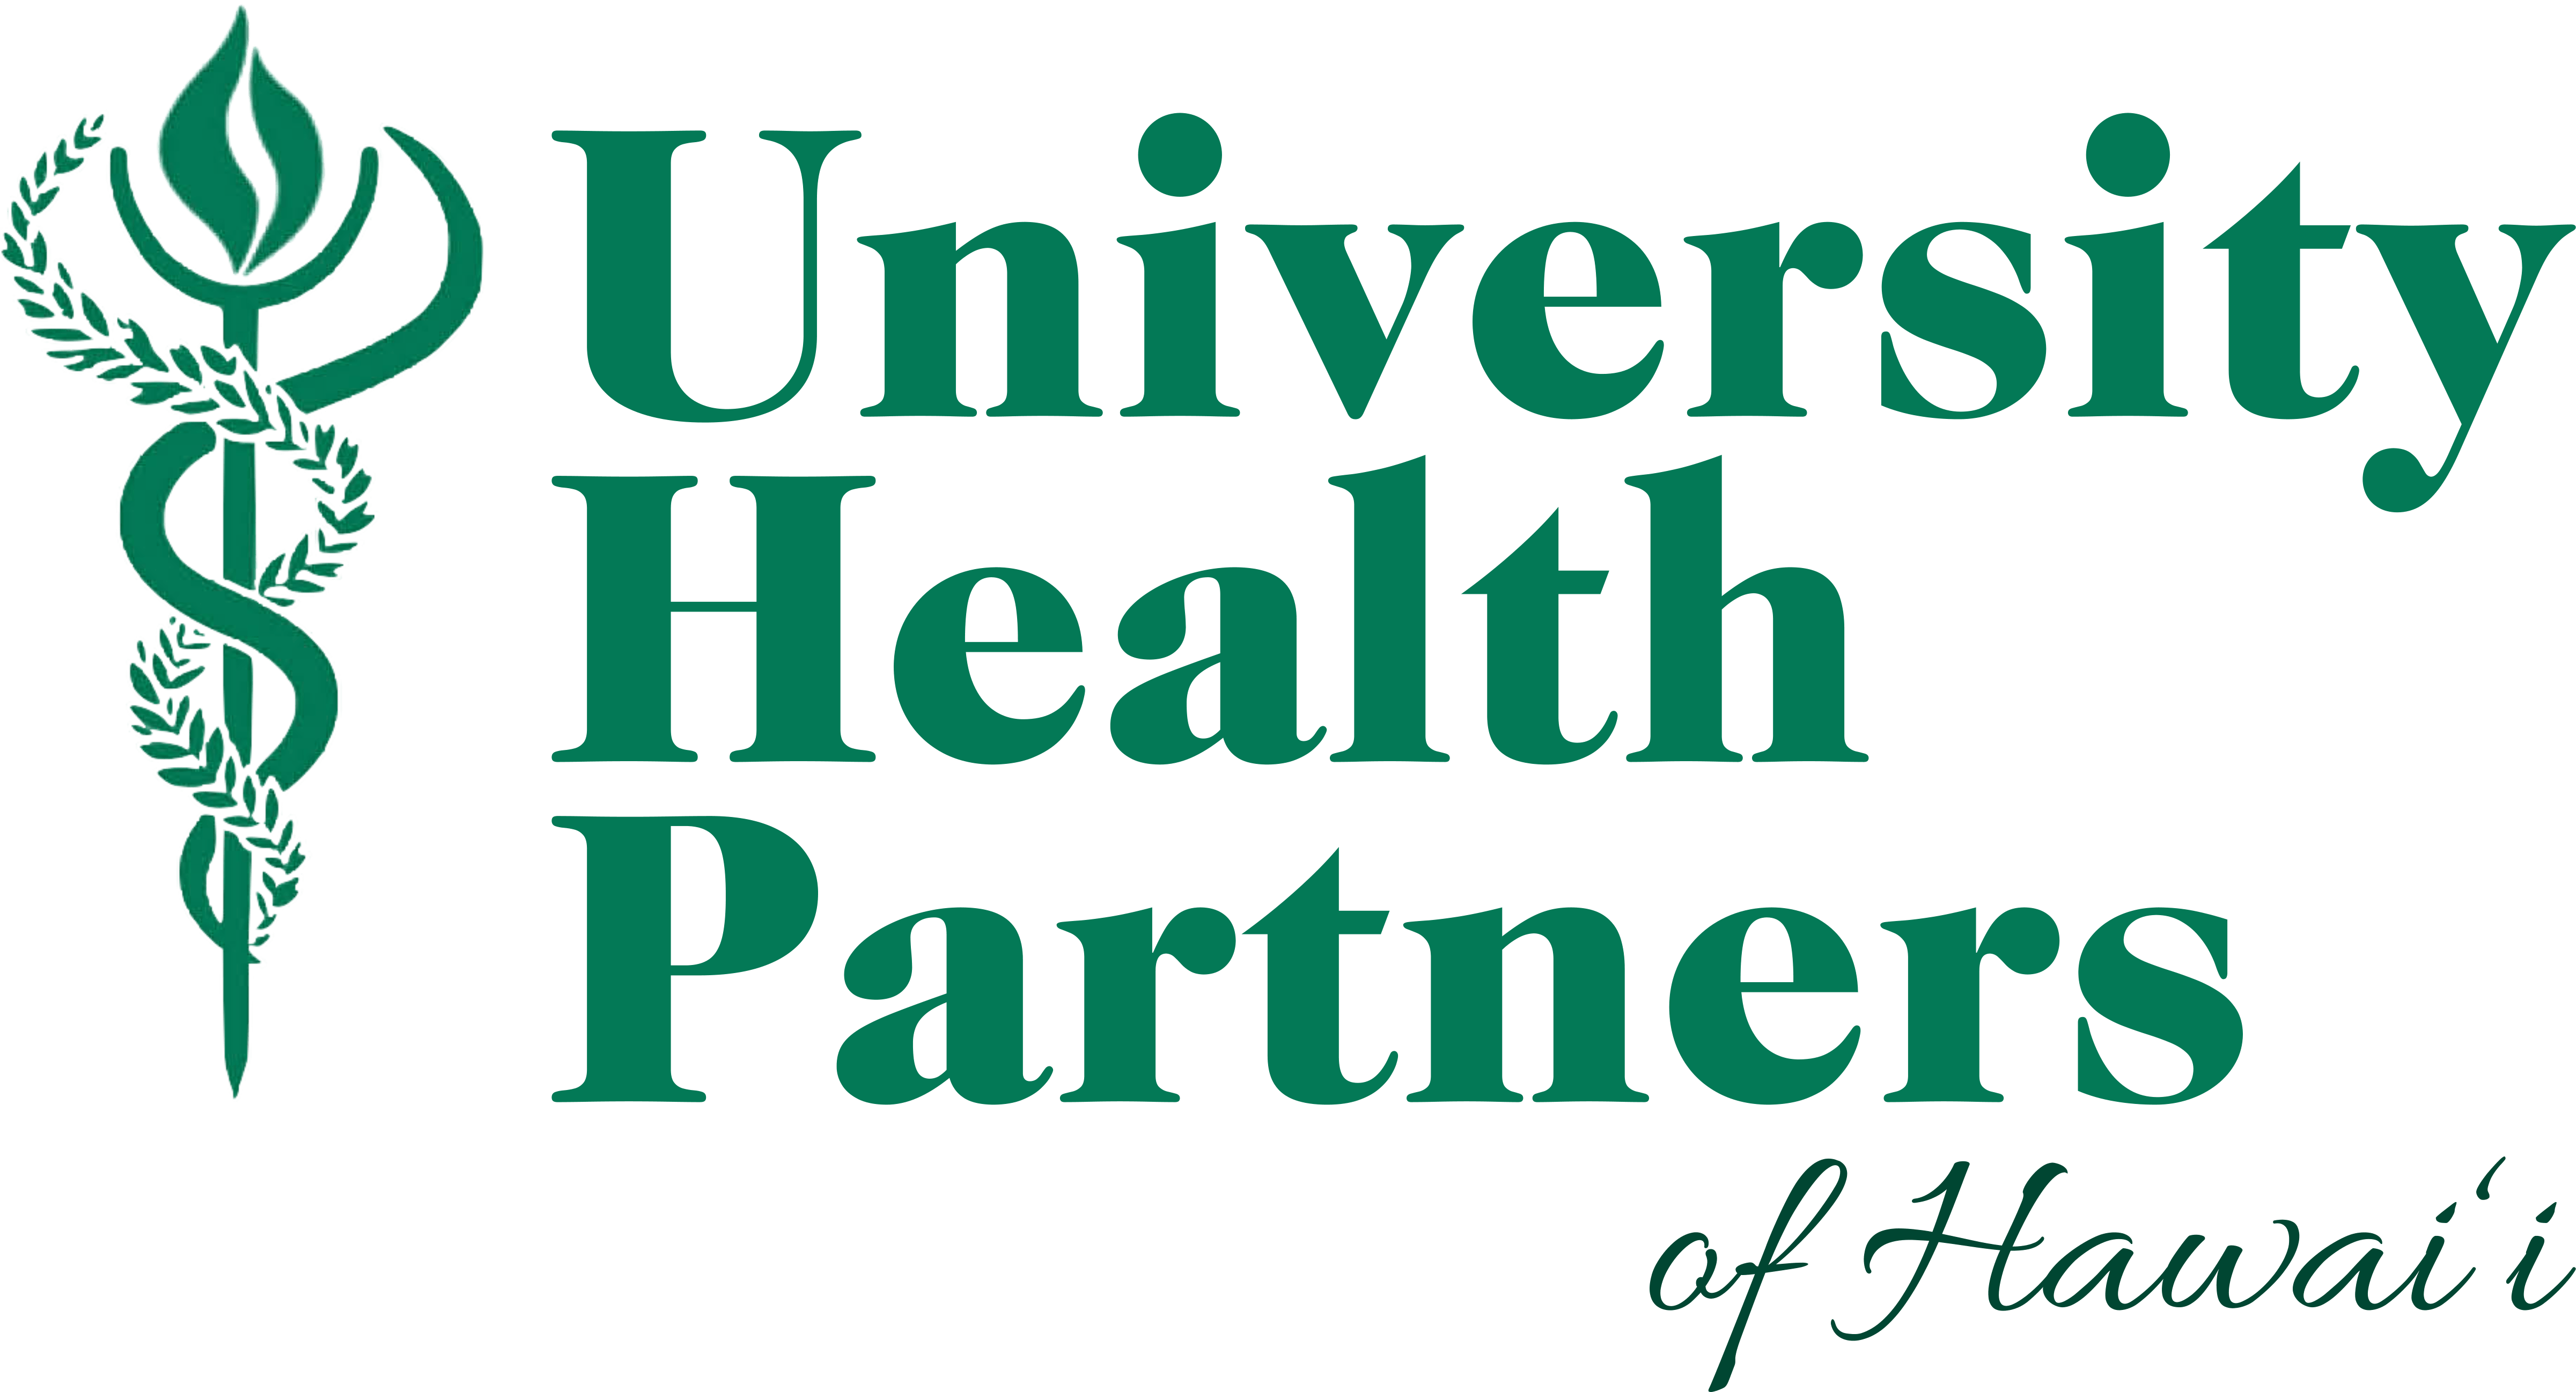 University Health Partners of Hawaii logo